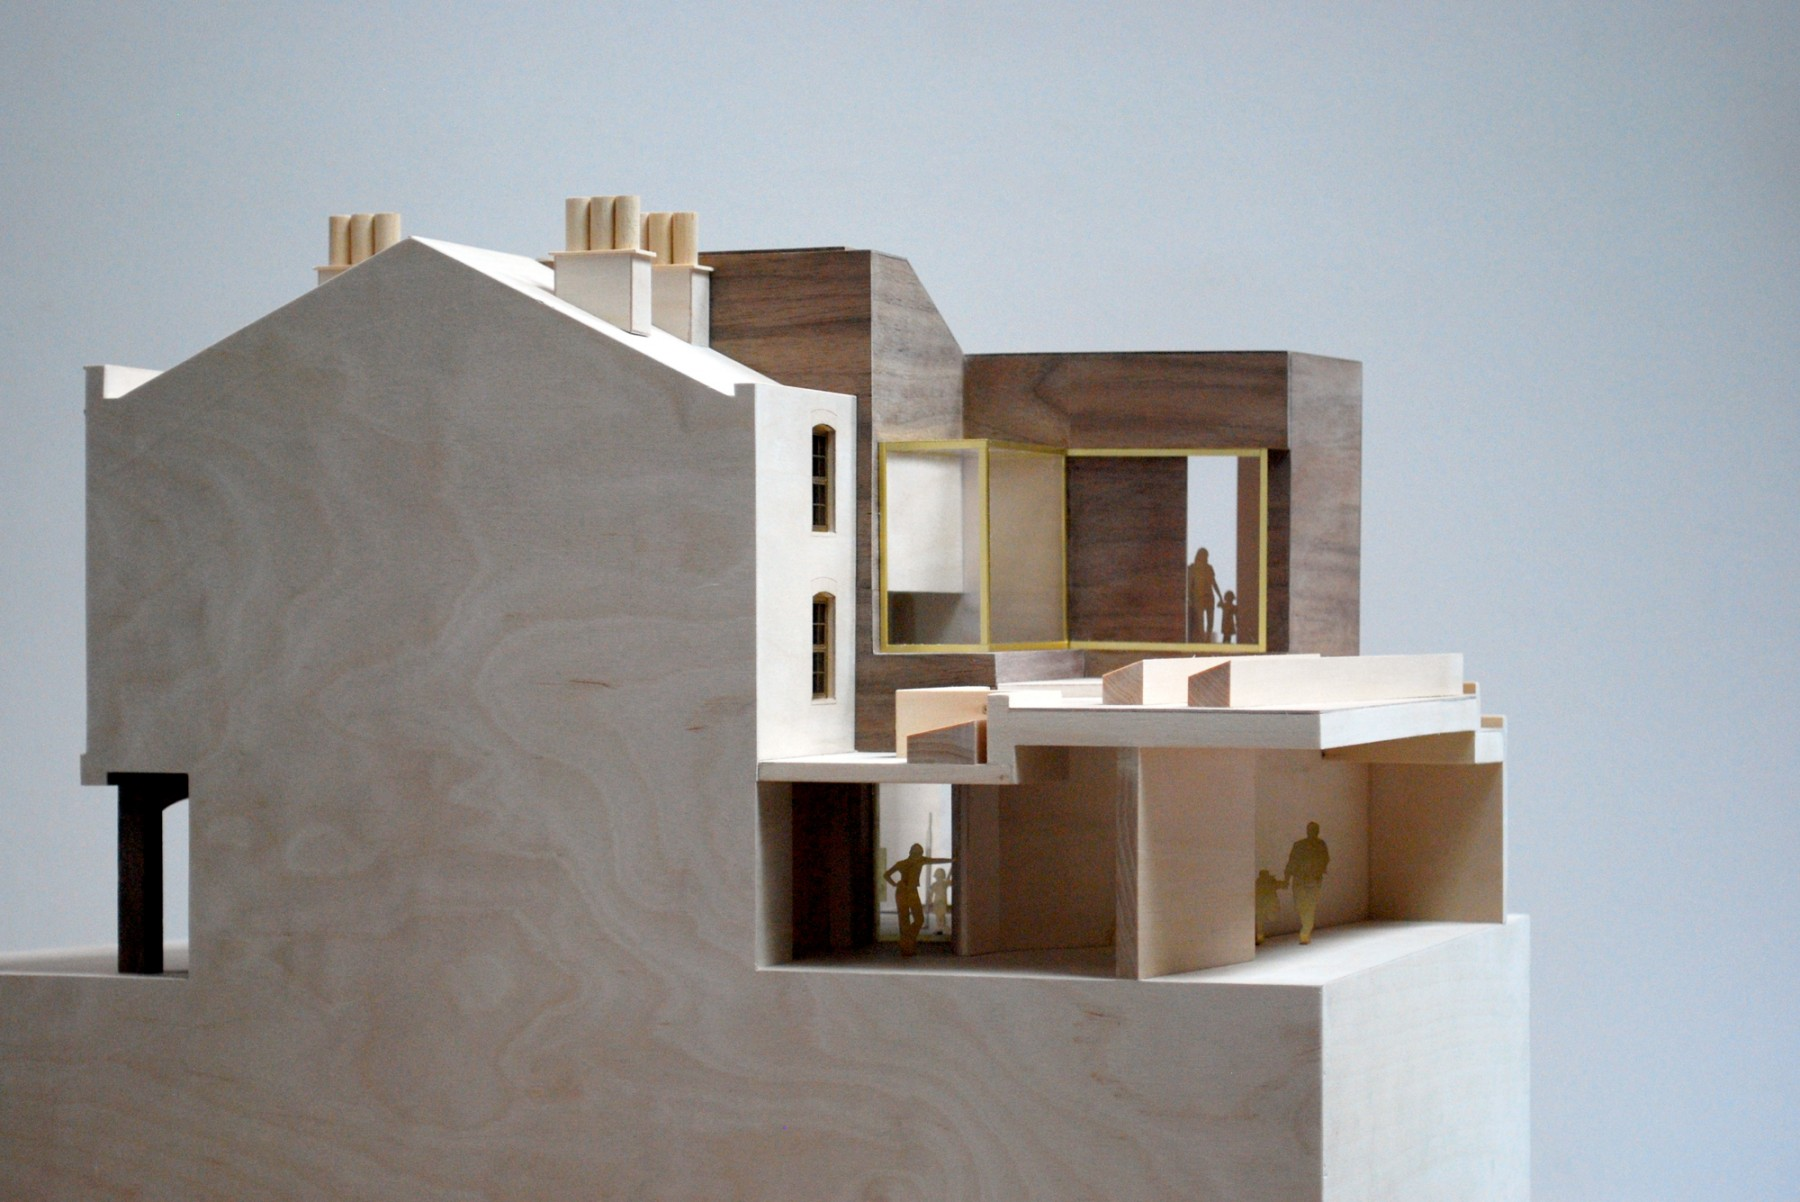 Kettle's-Yard-Cambridge-University-Art-gallery-education-redevelopment-Jim-Ede-Jamie-Fobert-Architects-model